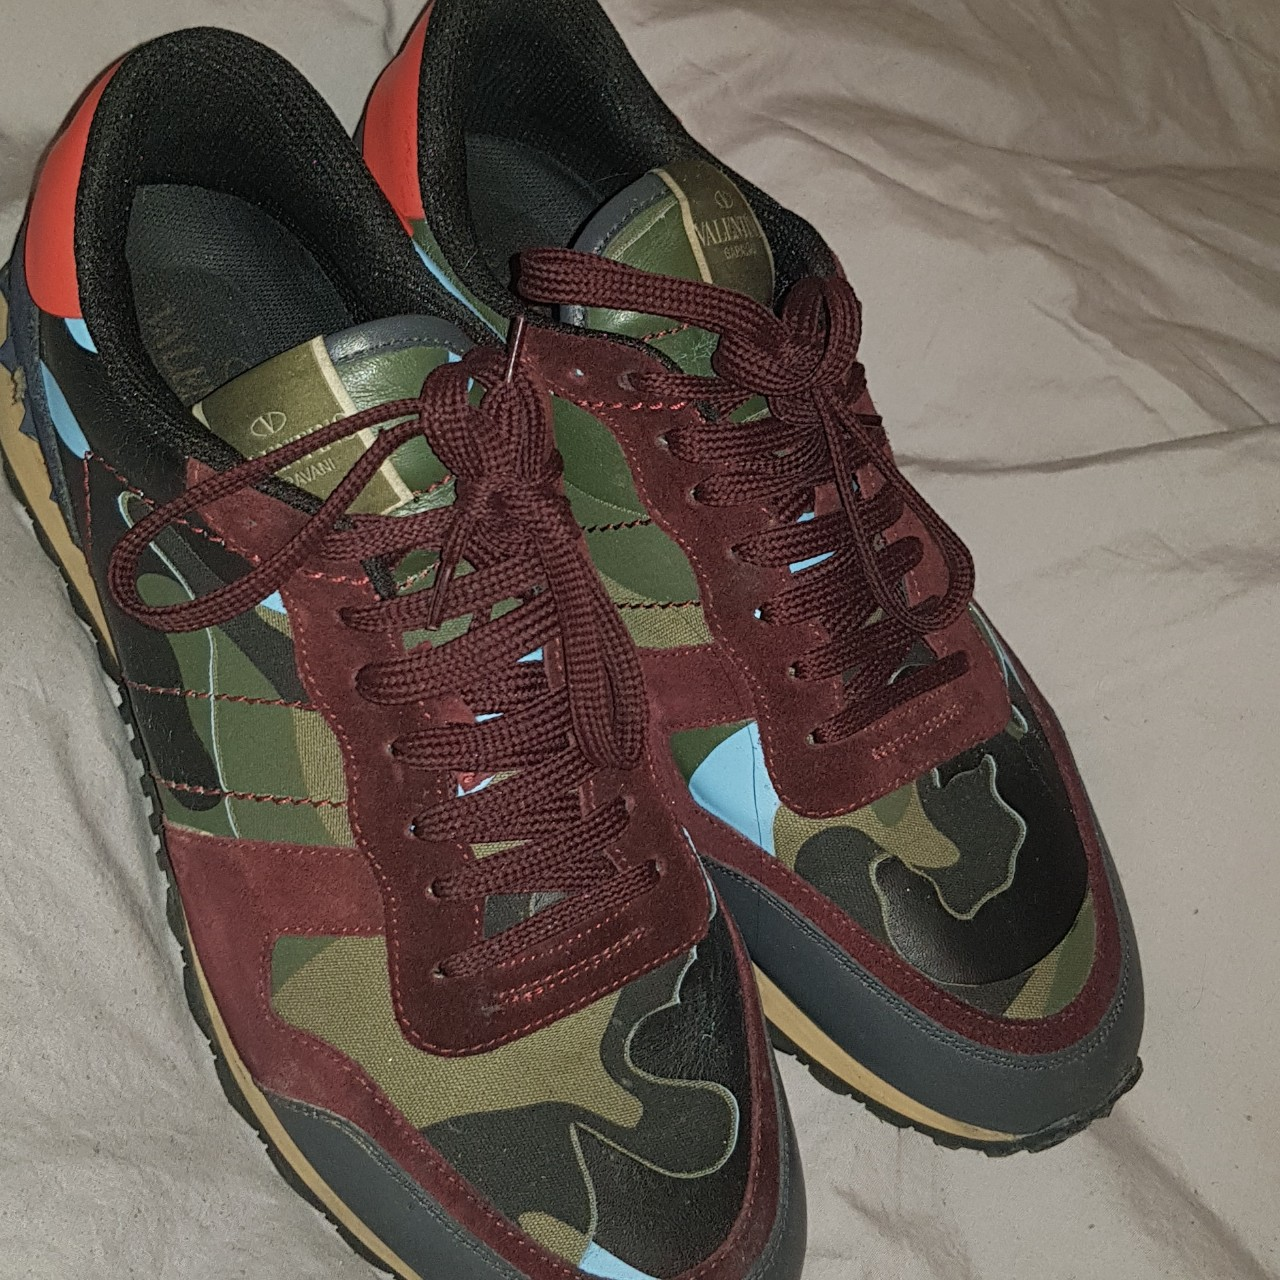 size 9 trainers sale